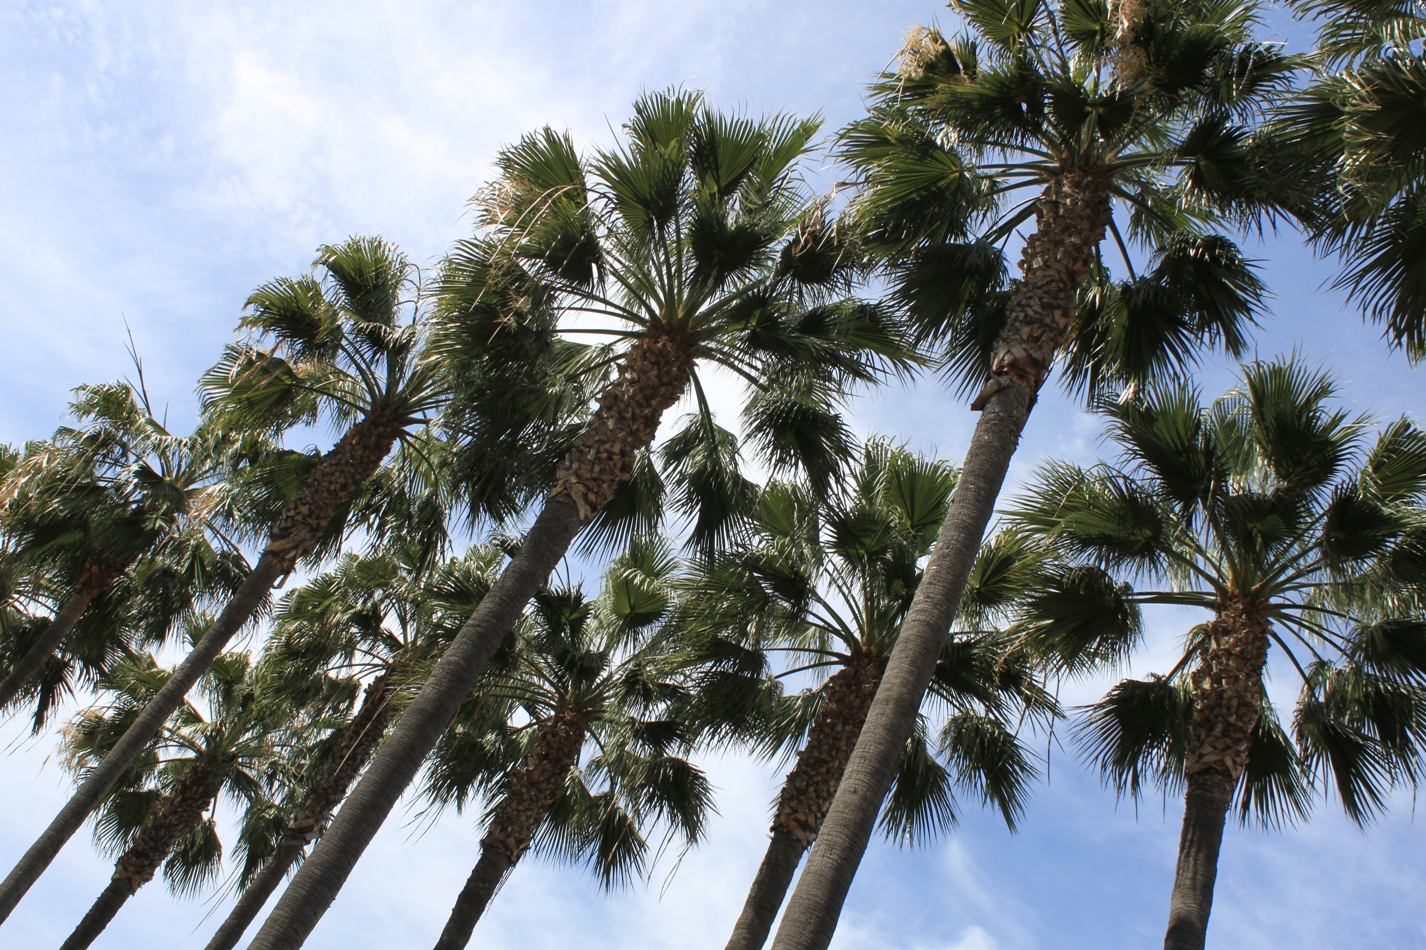 California Palm Trees Images crazygalleryinfo   Leechh Link Site 1426x950